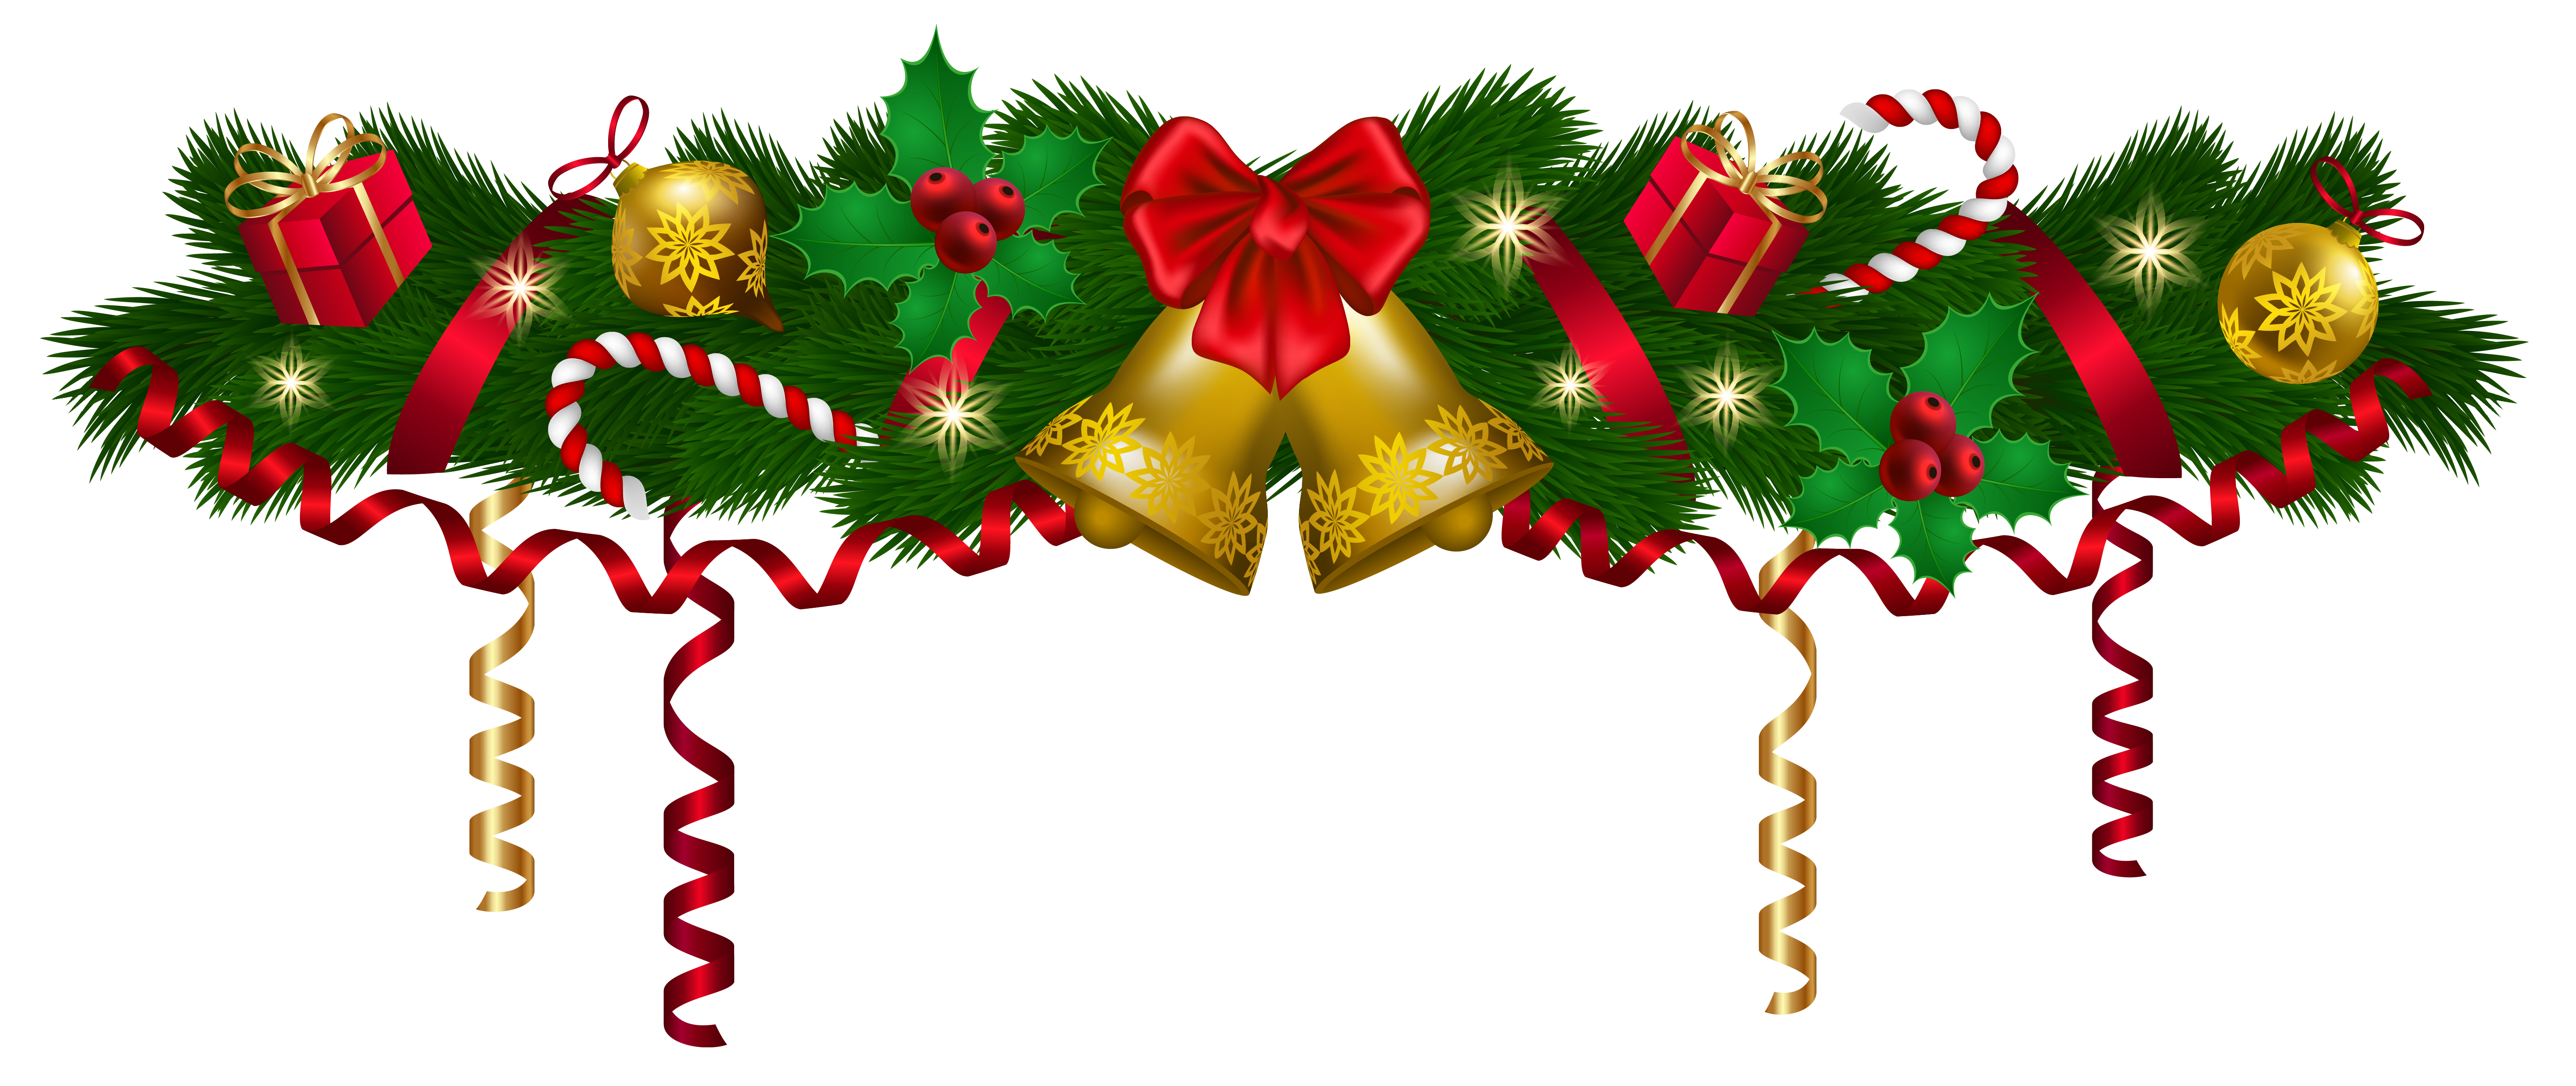 Poinsettia Garland Png - The best free Garland clipart images. Download from 56 free ...